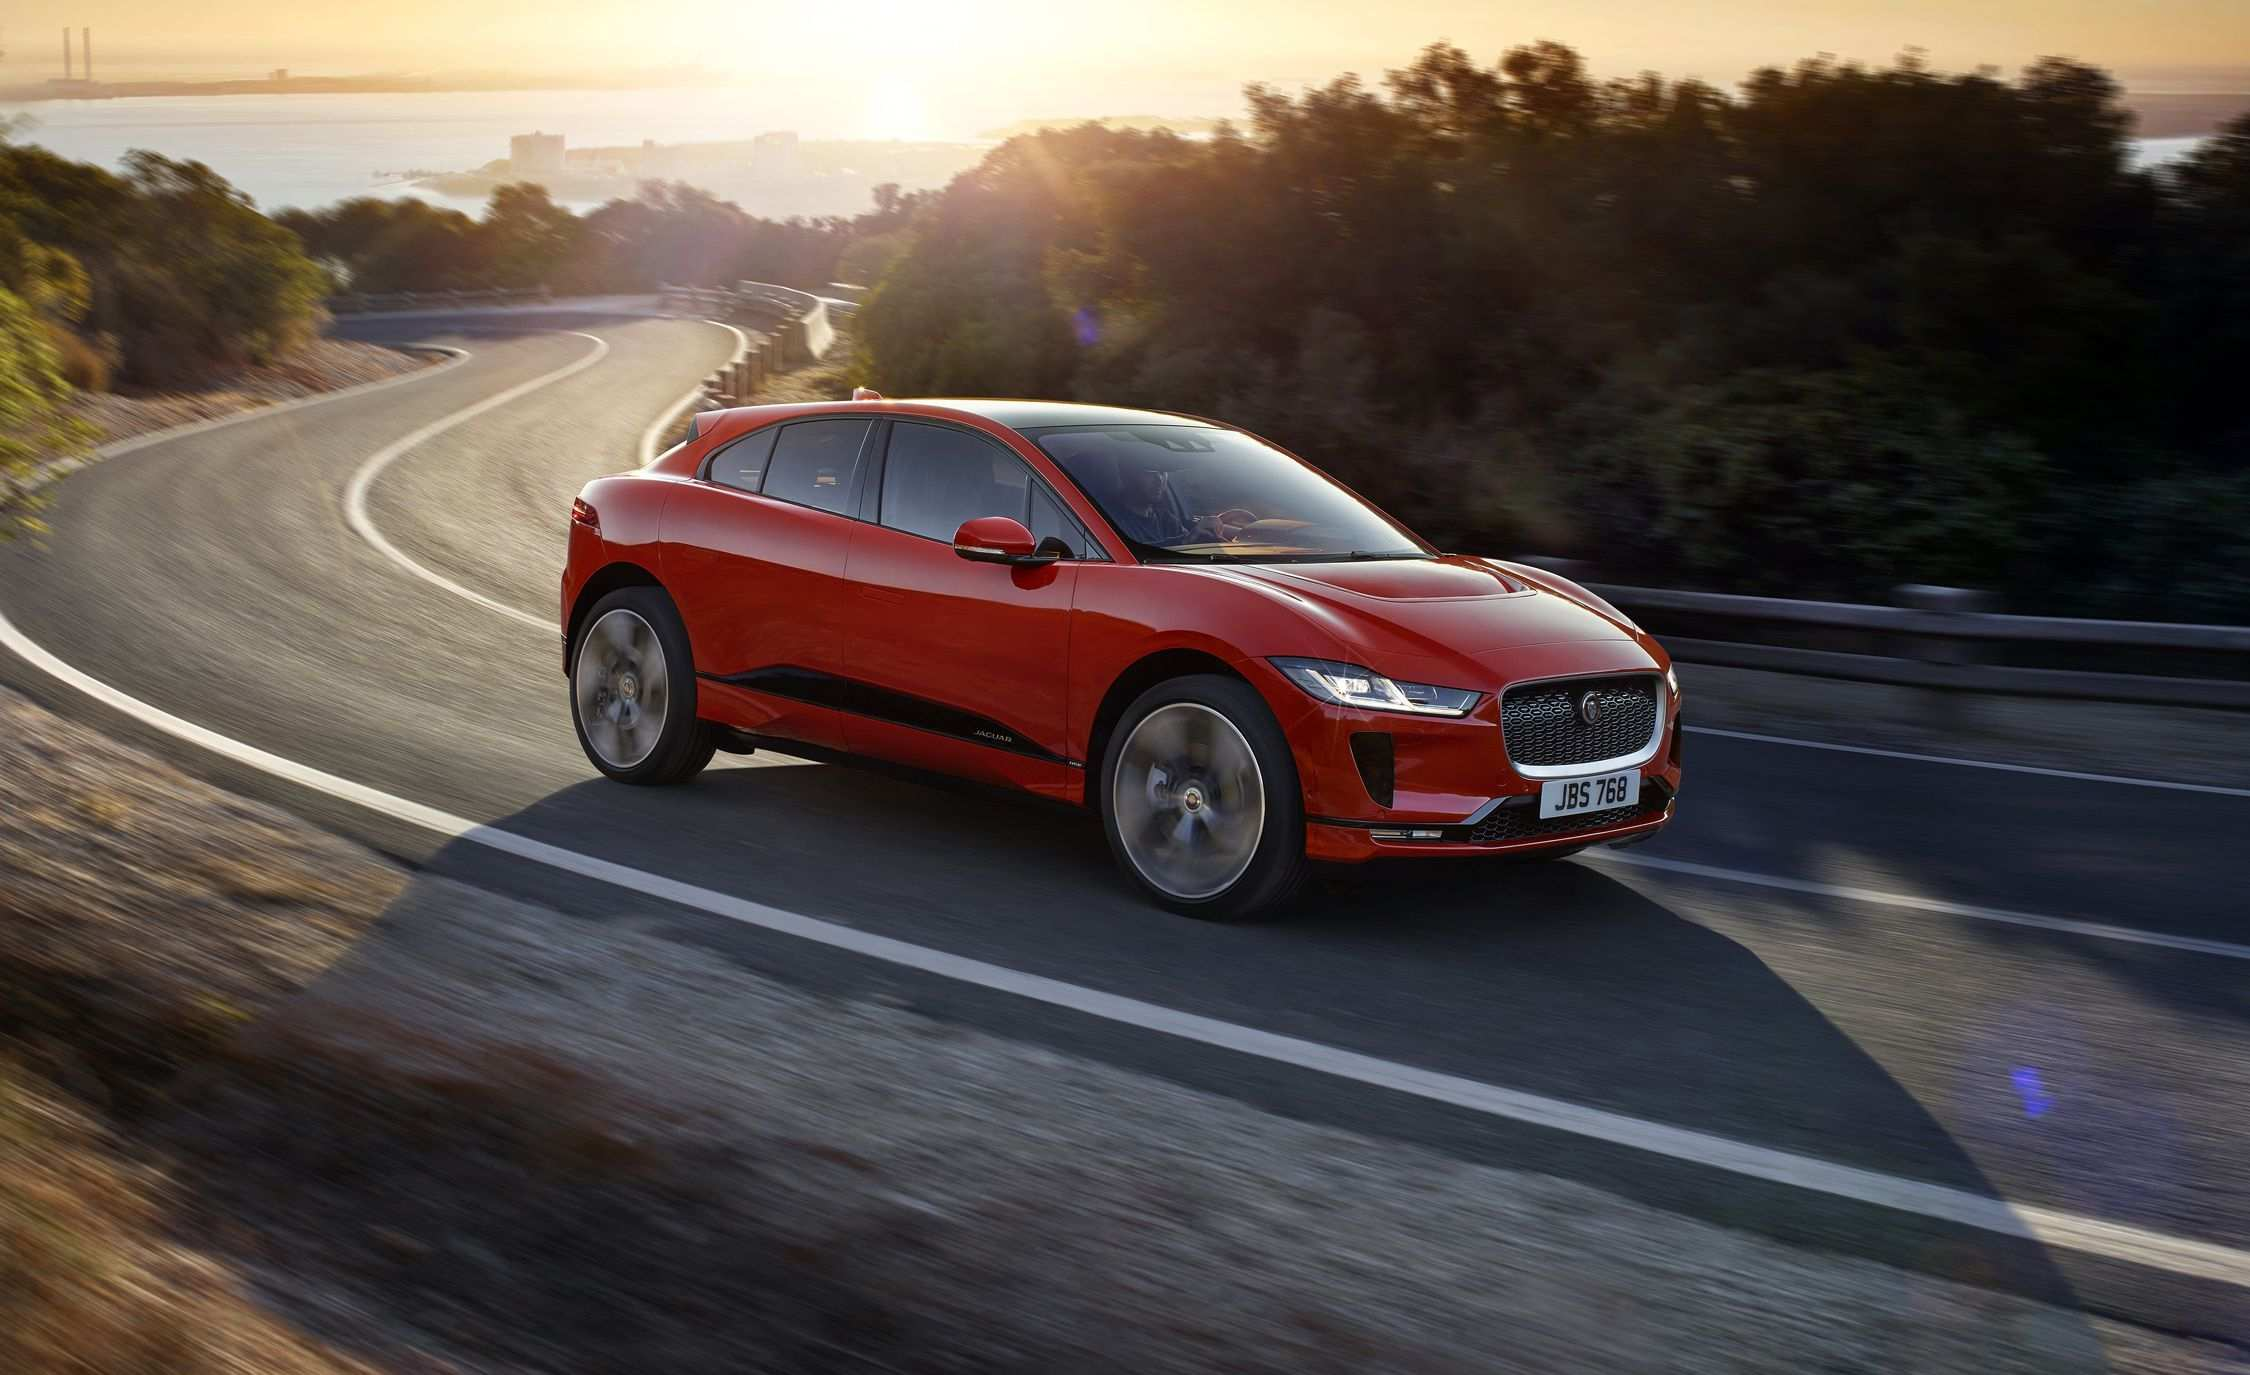 25 New 2019 Jaguar I Pace Release Date Concept by 2019 Jaguar I Pace Release Date